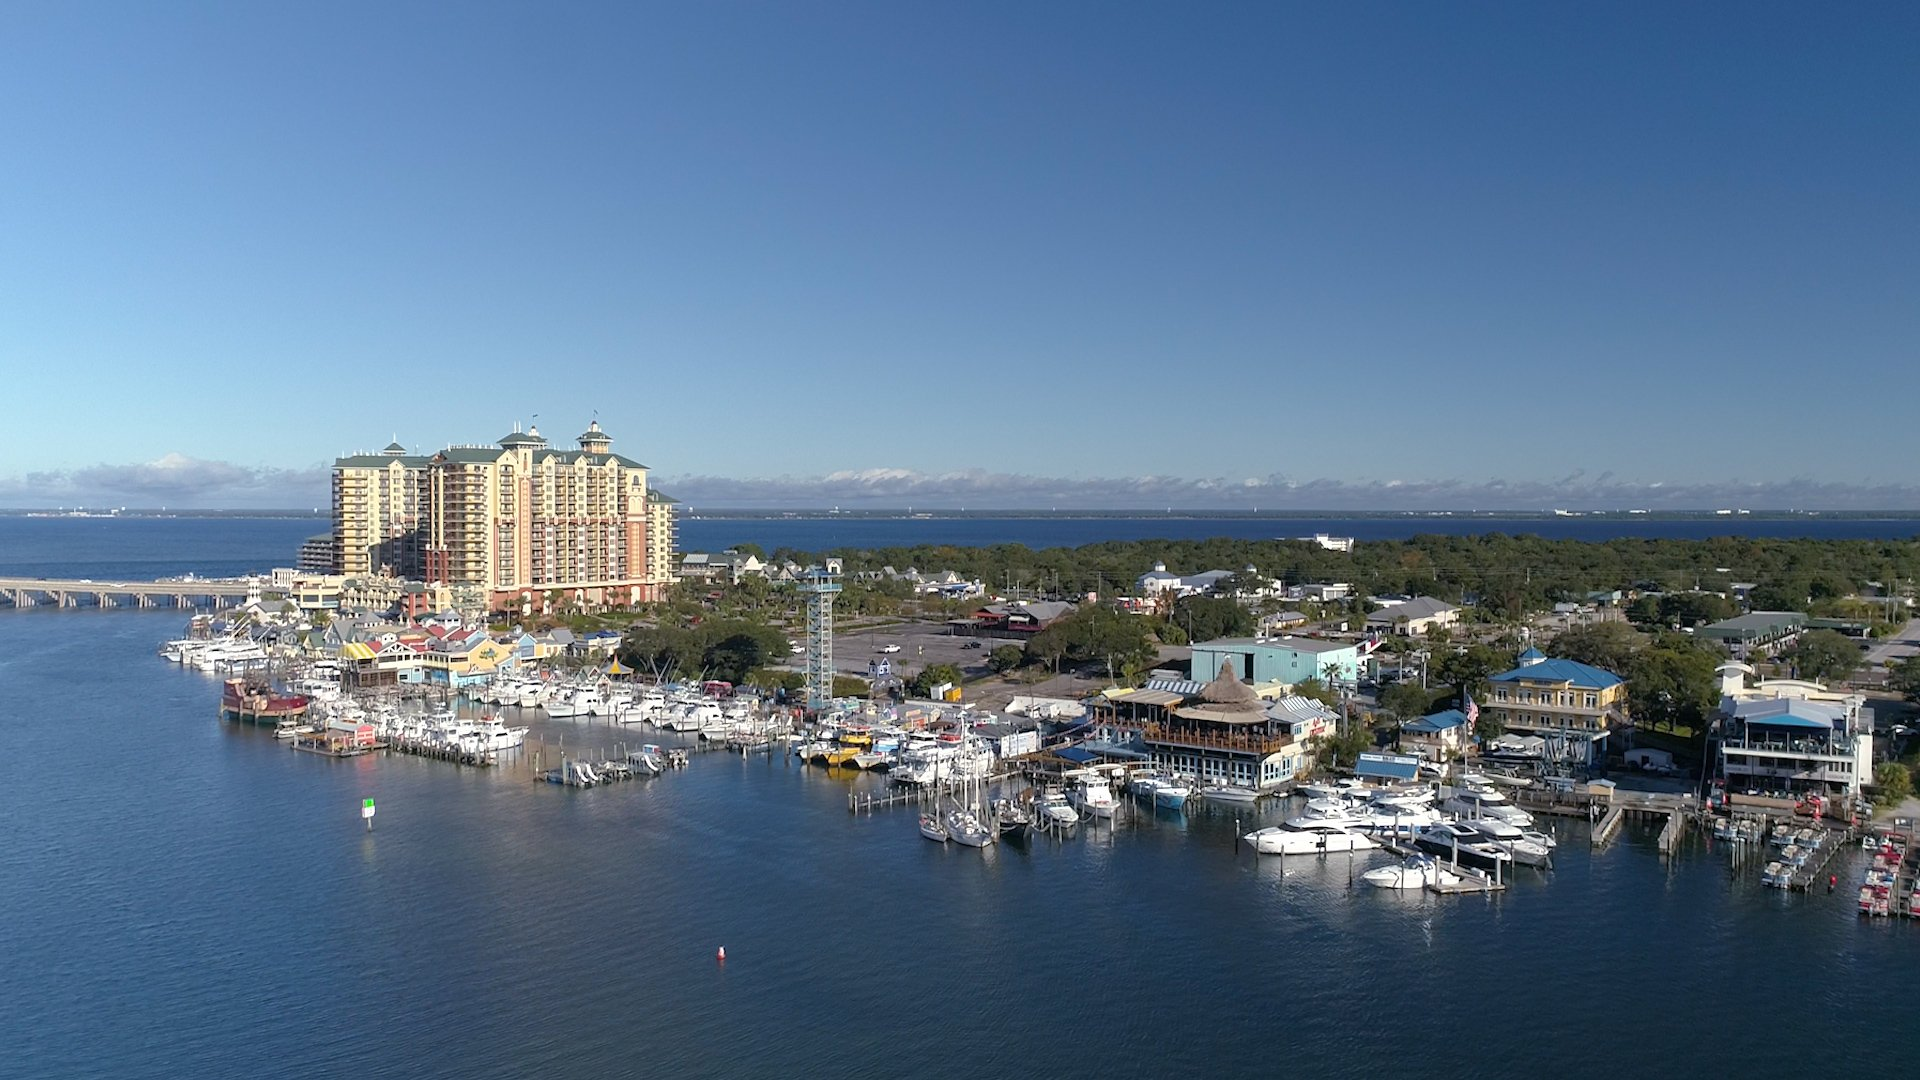 An Aerial view of Destin harbor, one of the best fishing spots in Florida